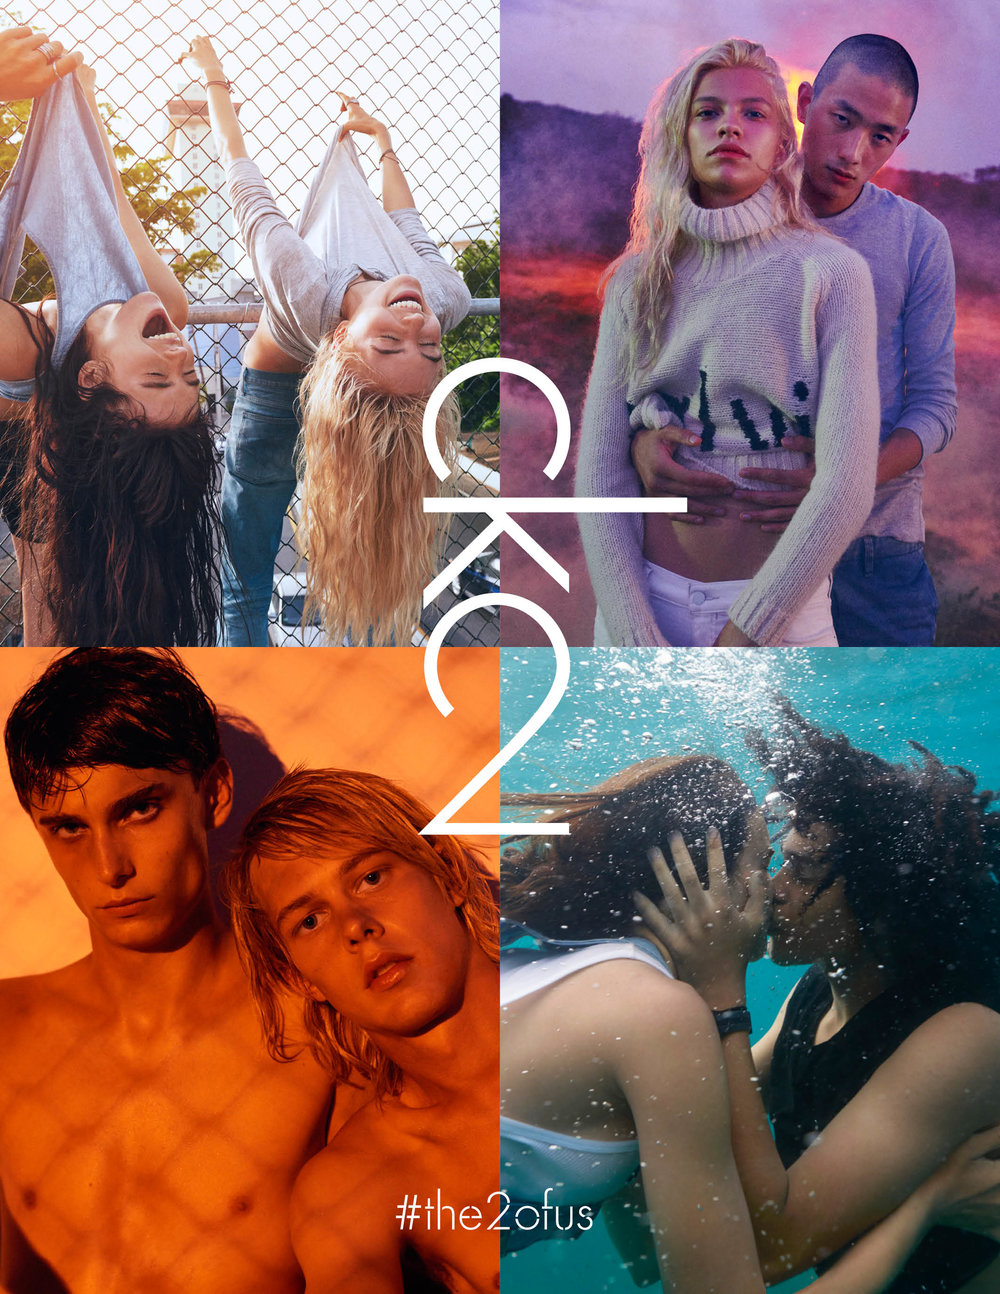 ck2 x calvin klein - a new scent for #the2ofus by calvin klein